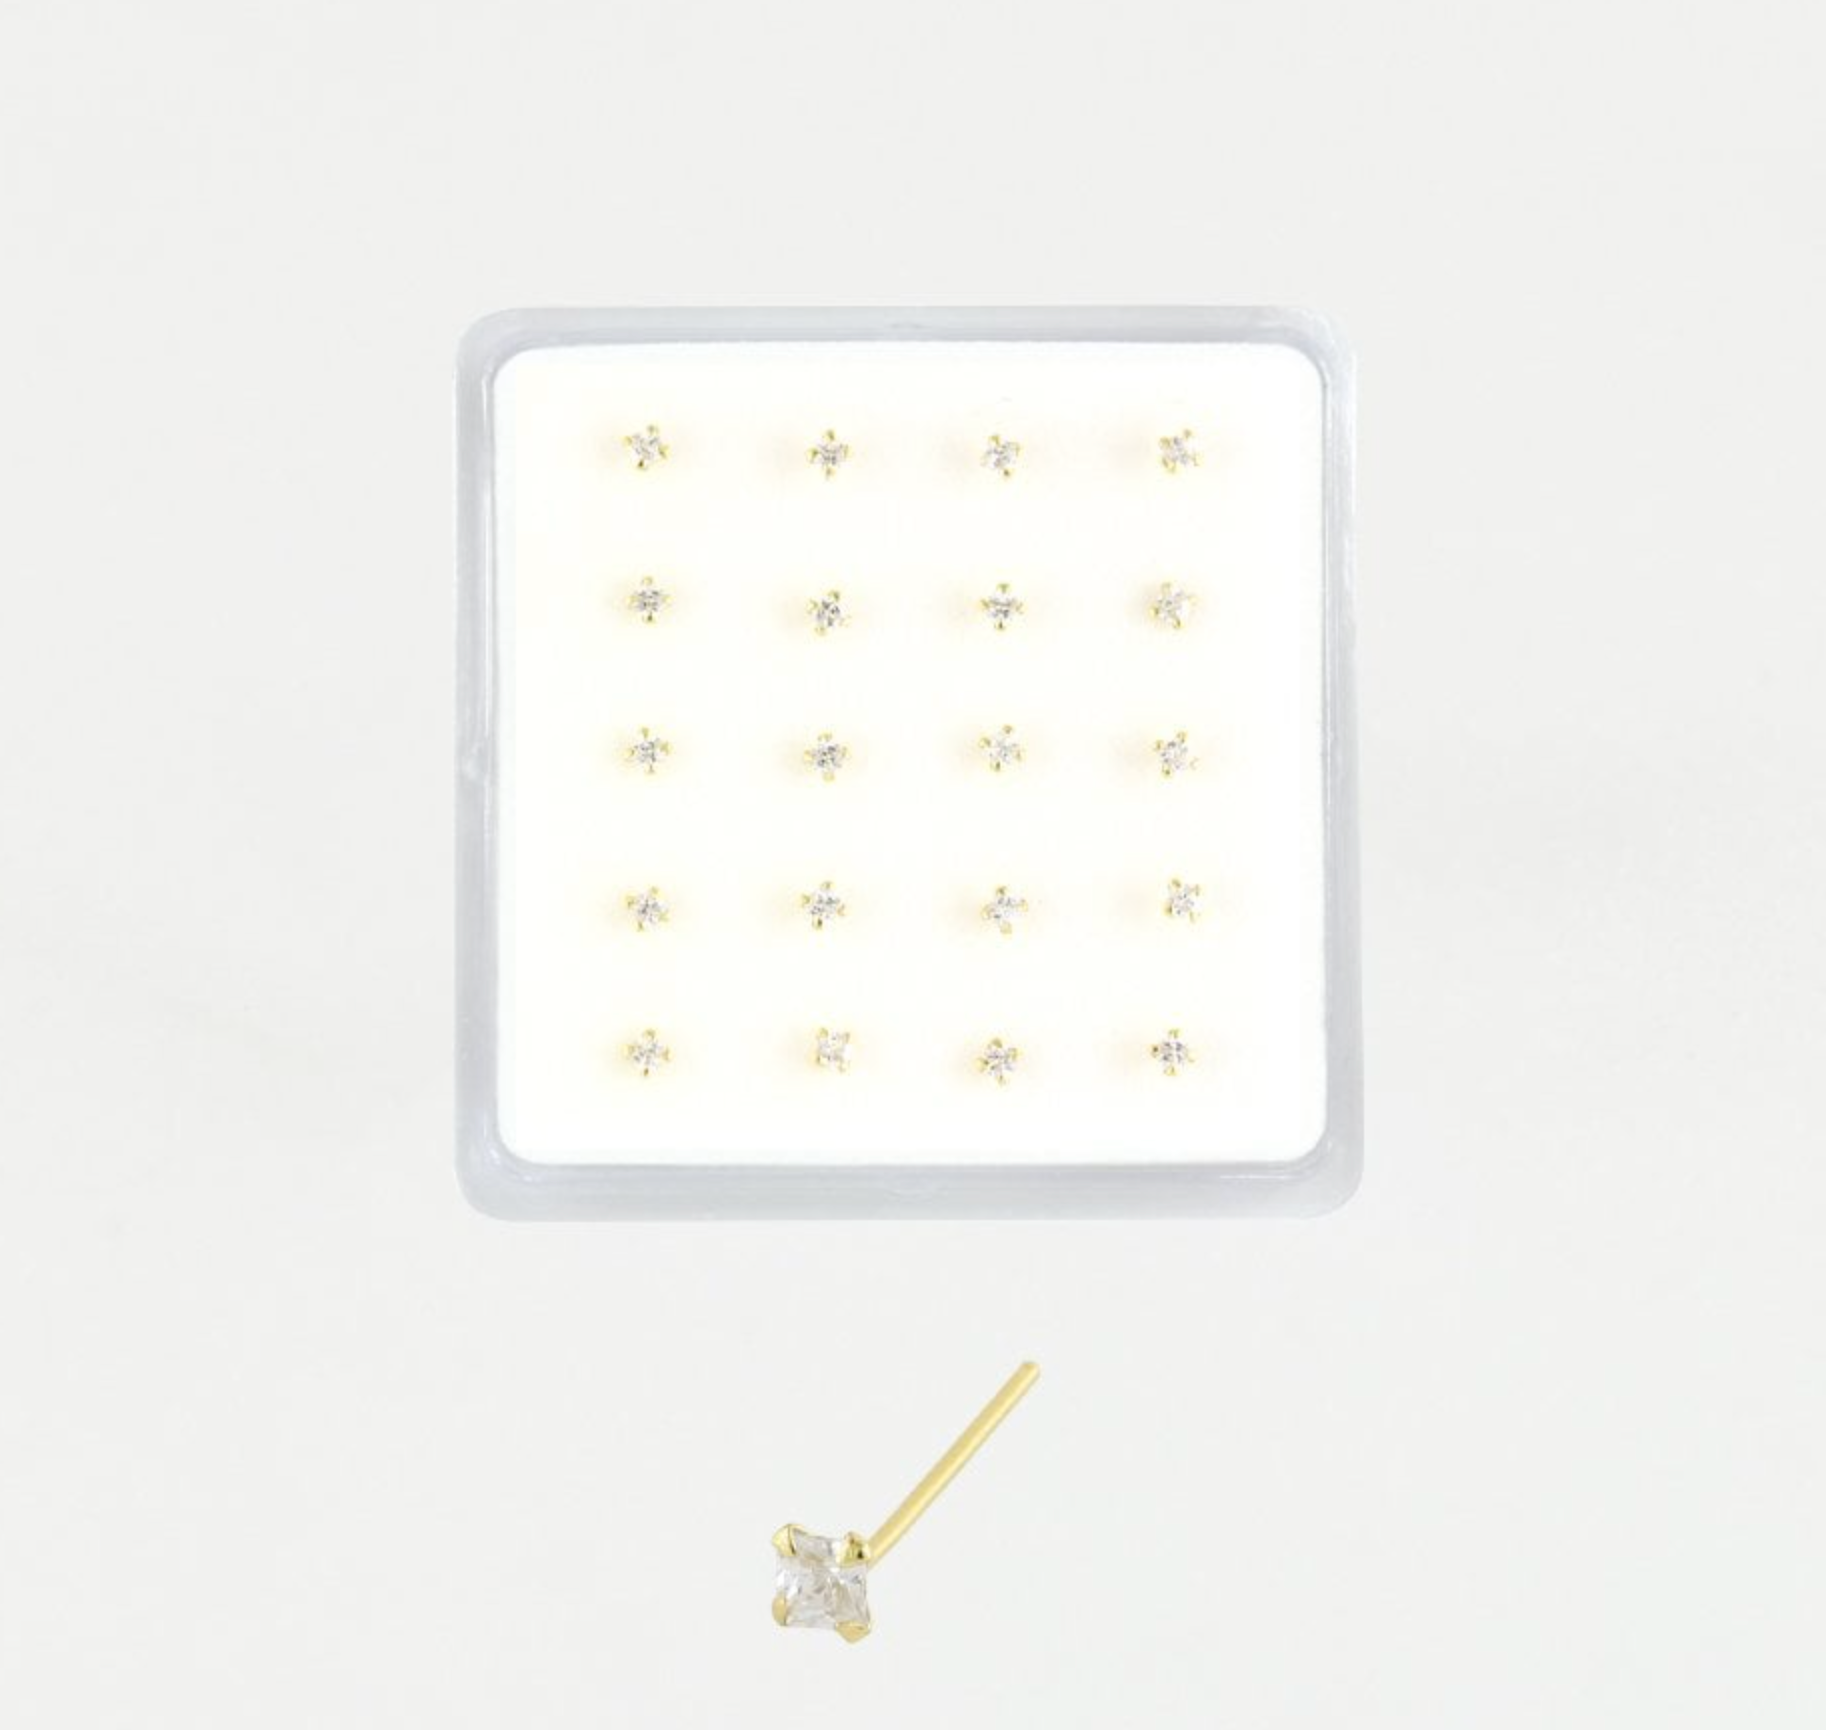 Gold Plated Nose Stud  - Square Clawset